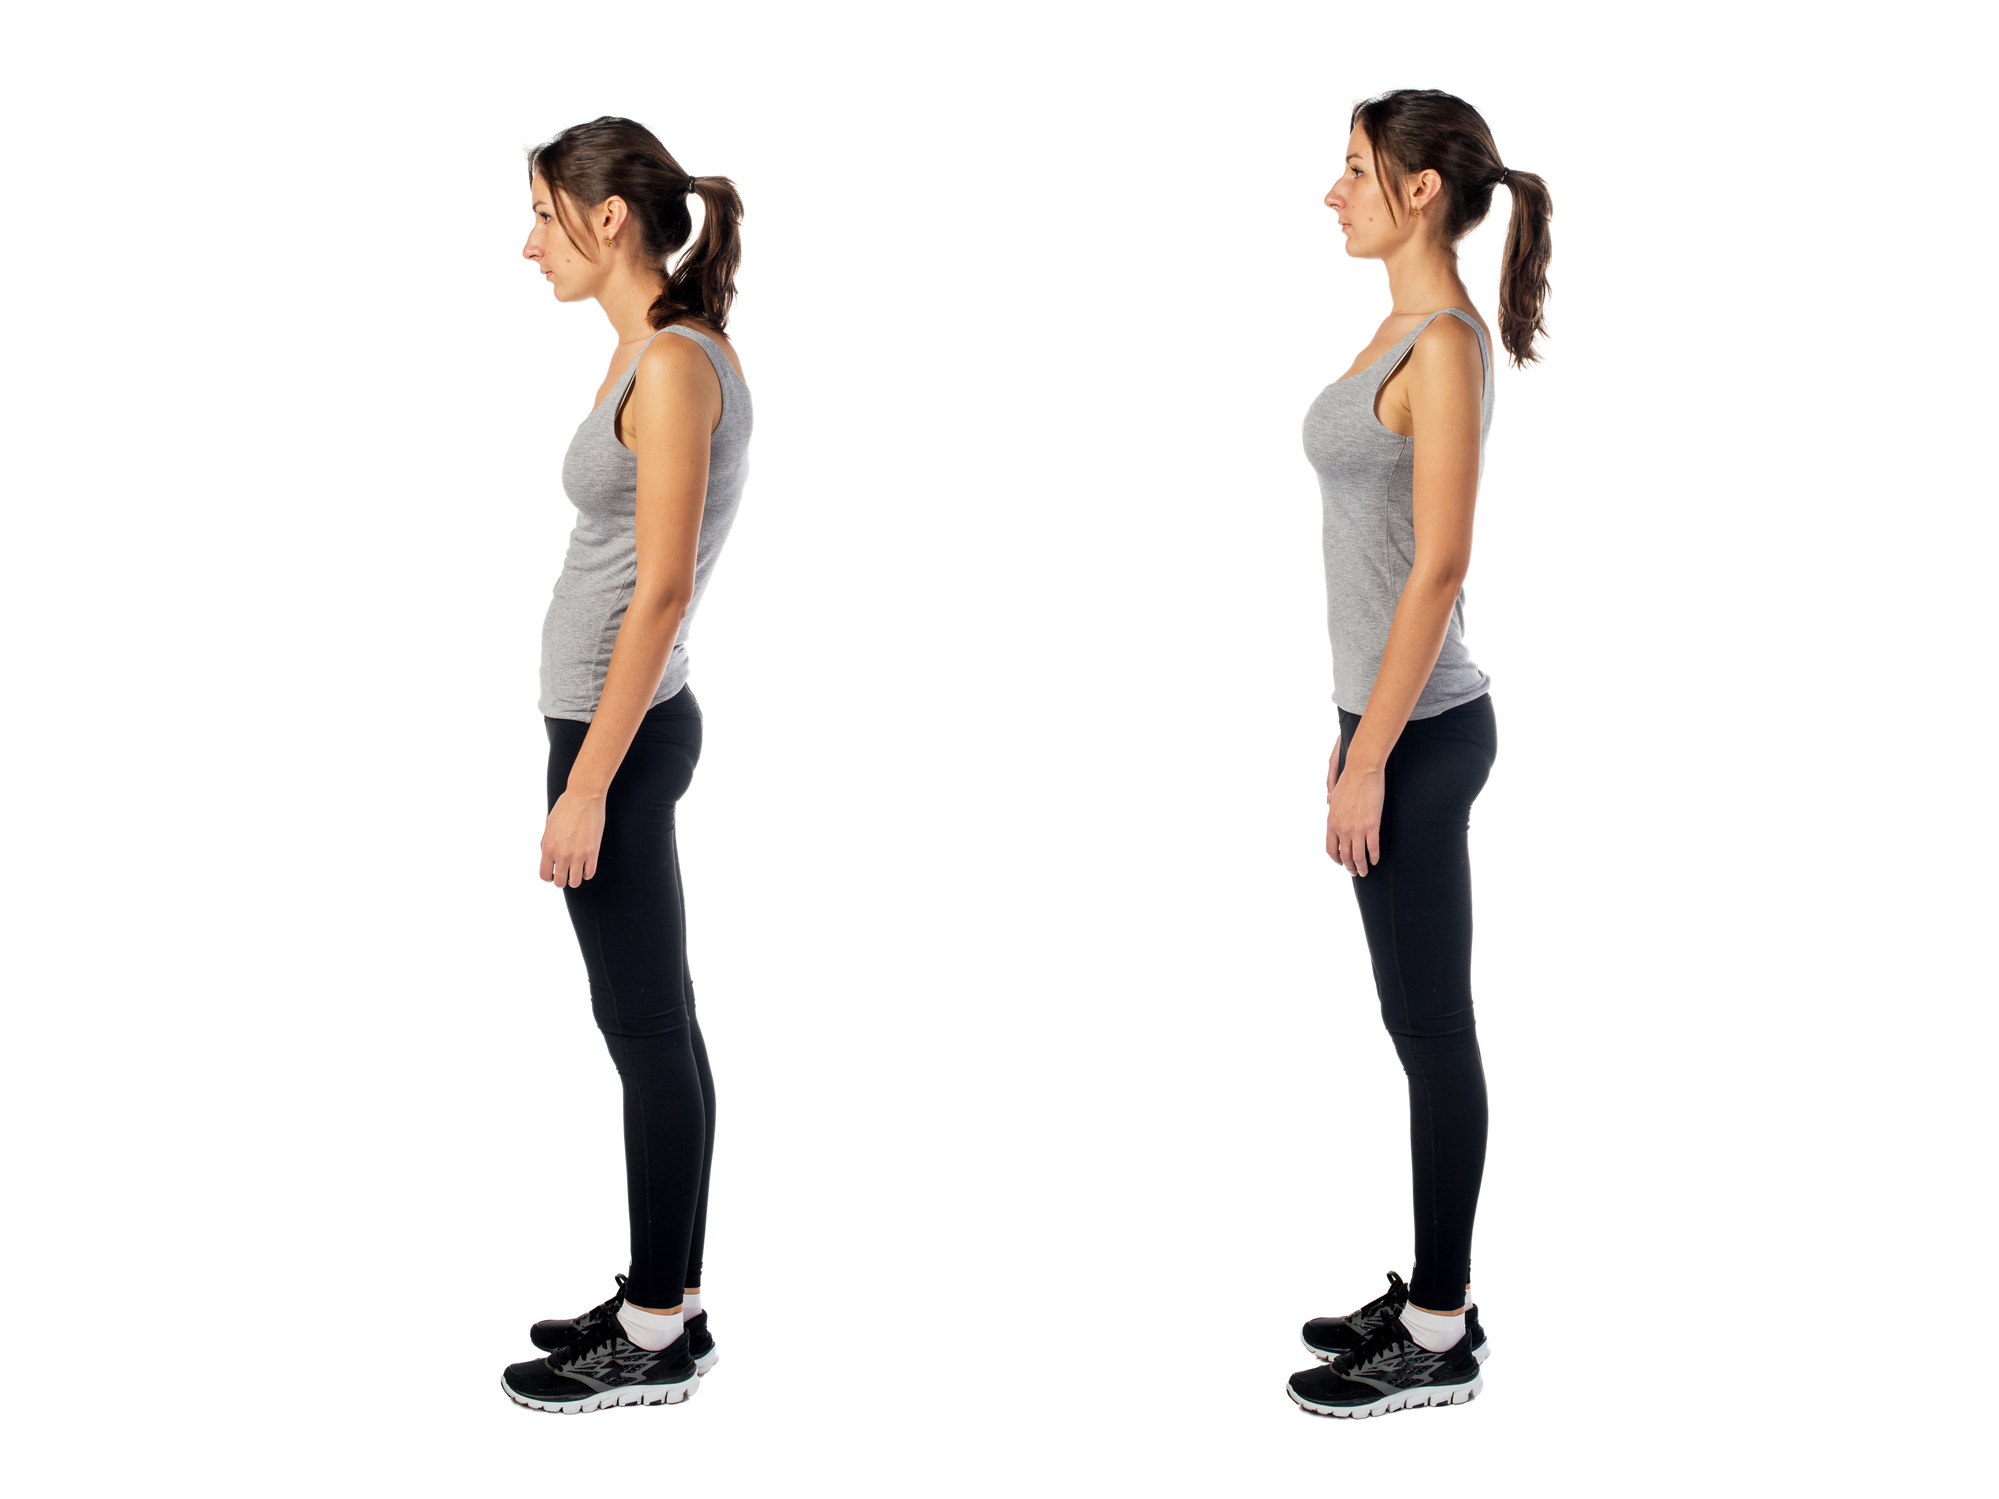 A Chiropractor's Advice To Improving Your Posture - Cityline